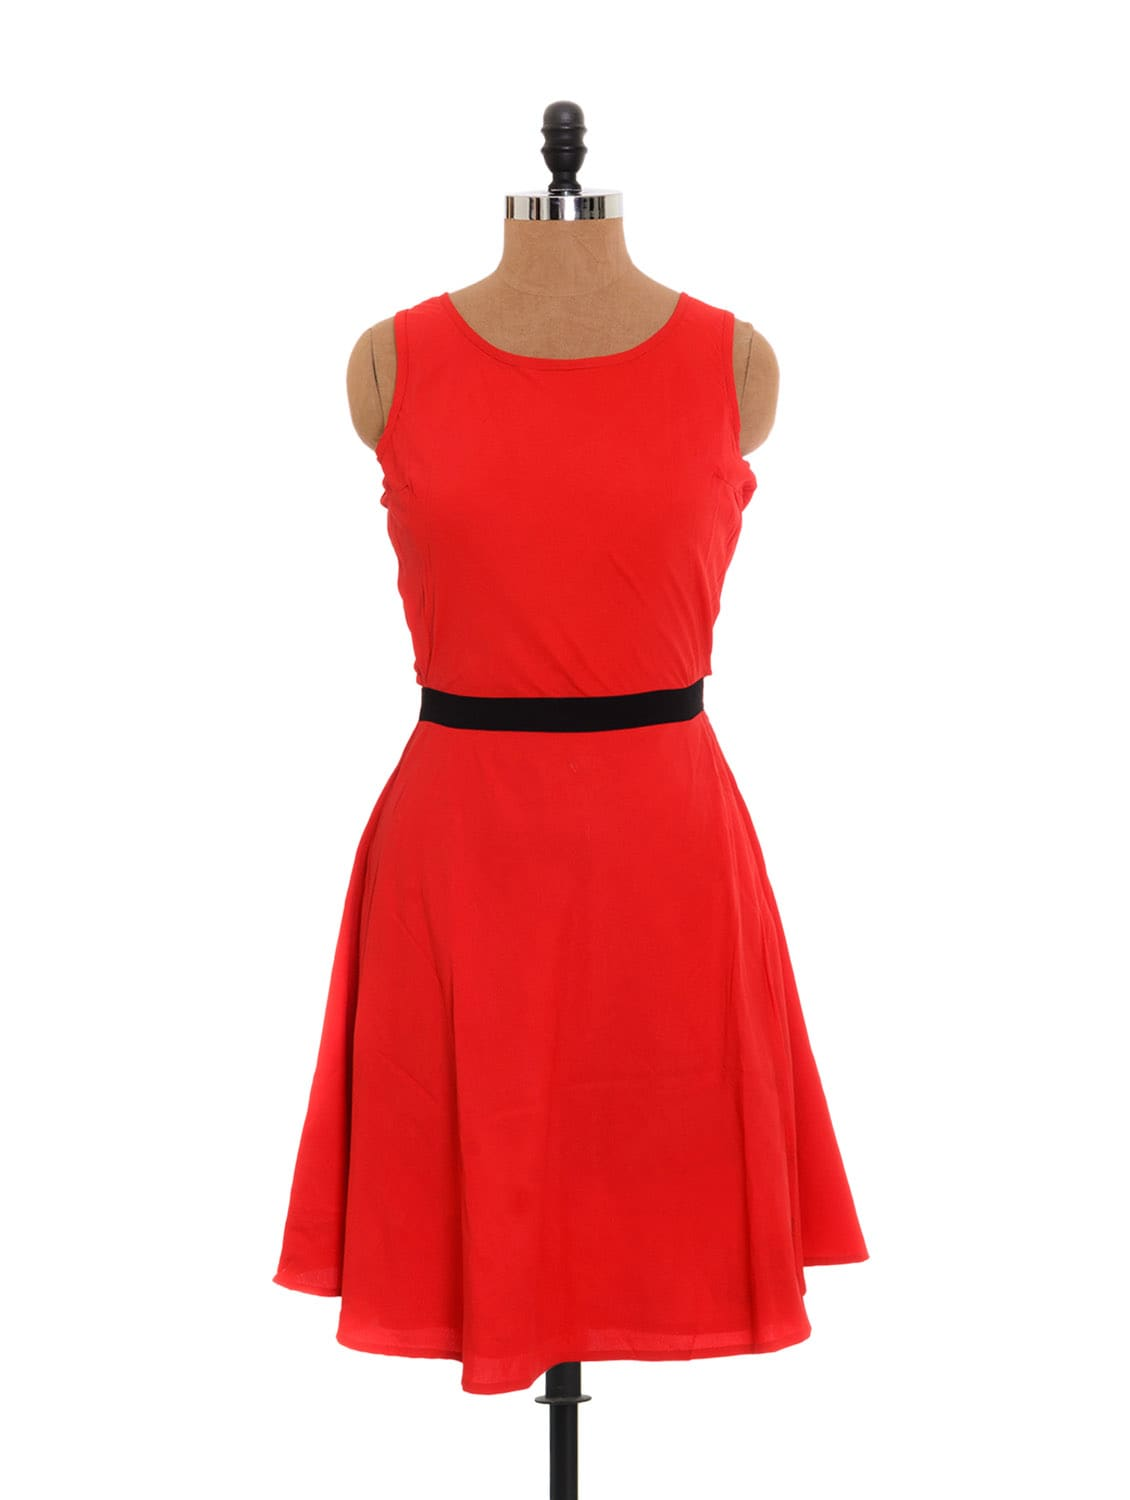 Red Dress With An Interesting Back - Xniva